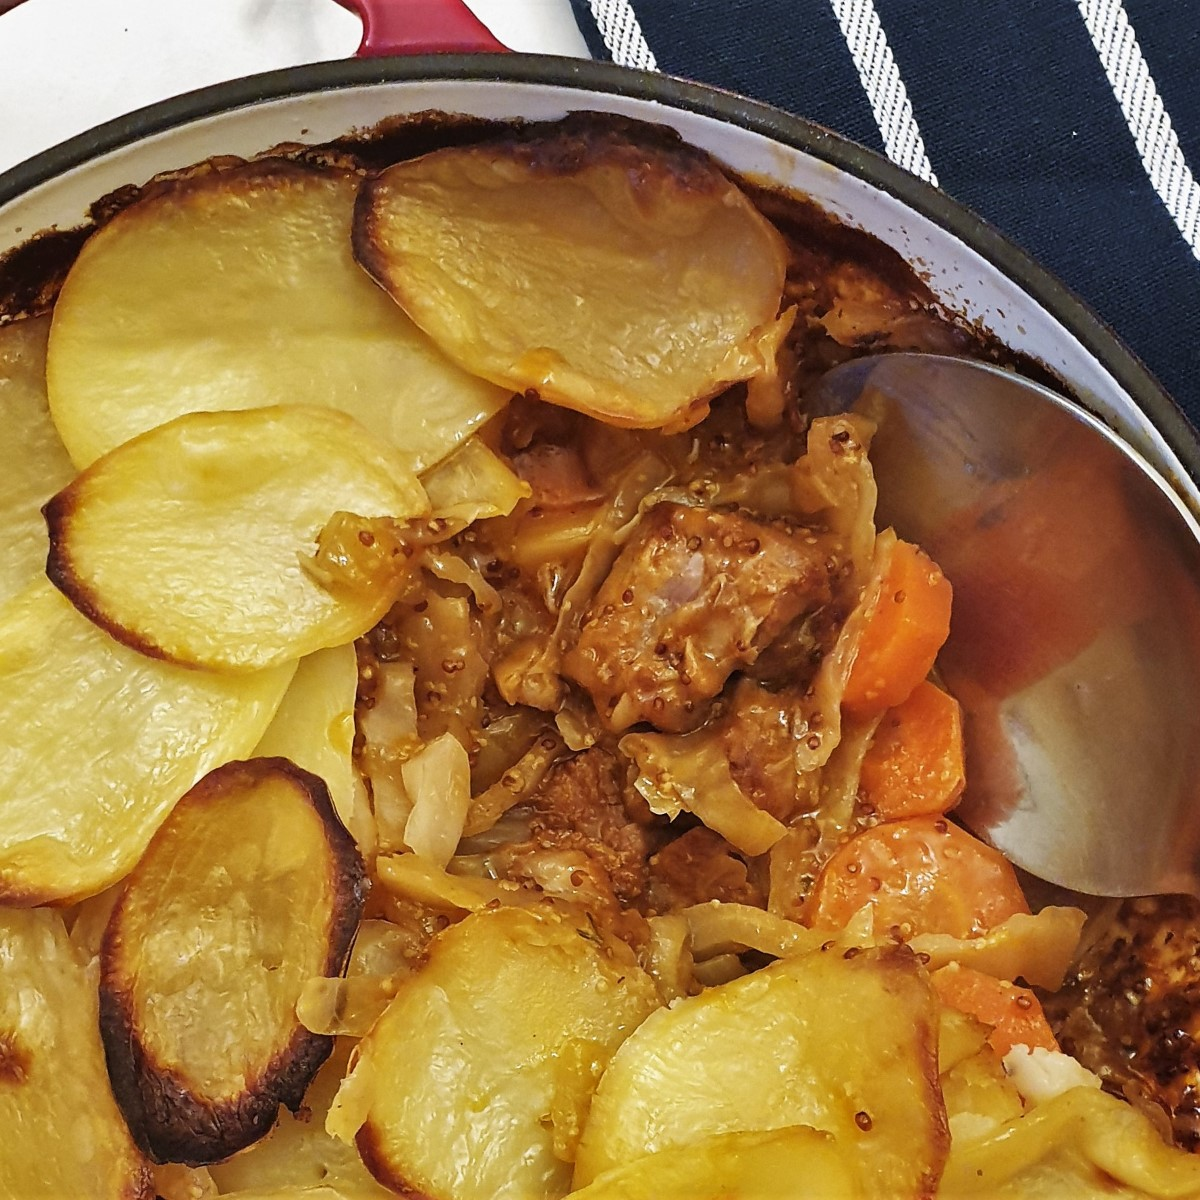 Close up of the meat and vegetables in the pork and cabbage casserole.